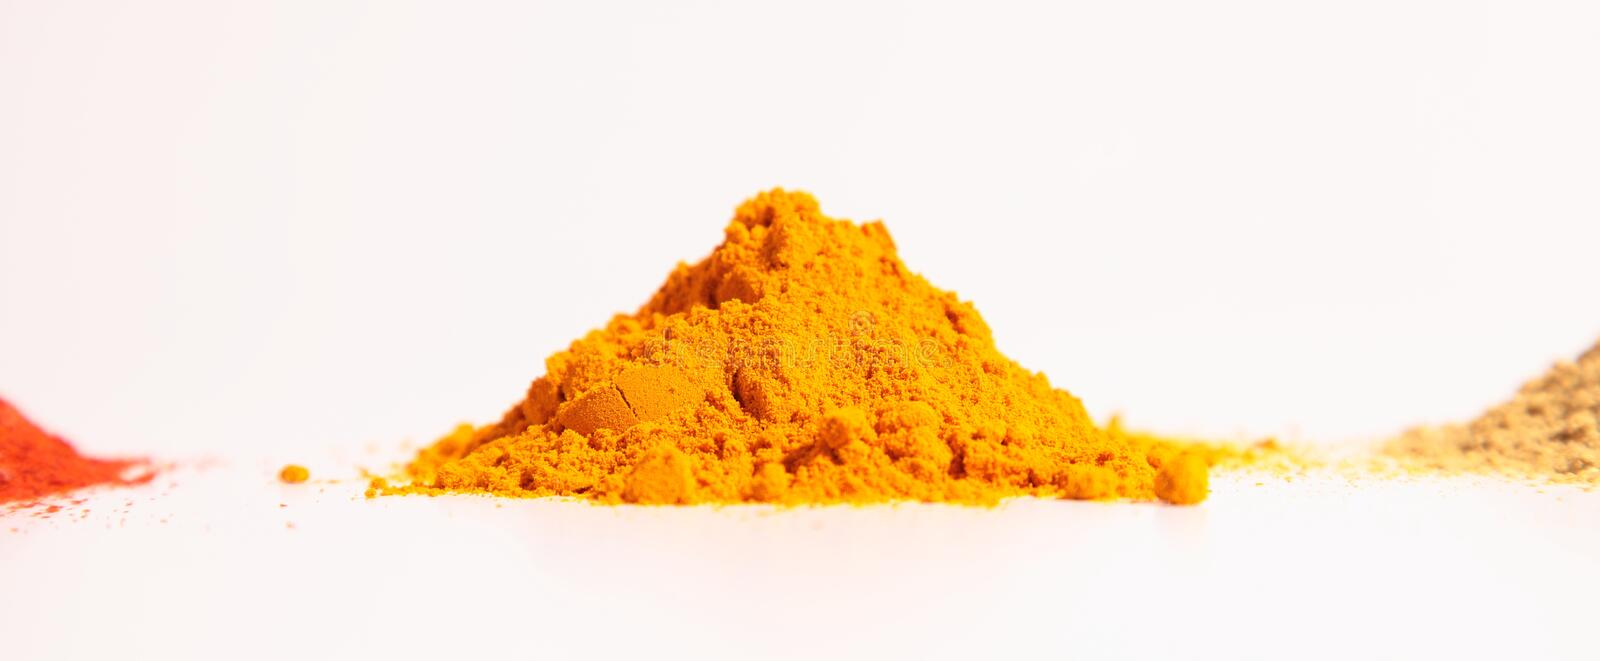 Download Small Heap Of Spices, The Turmeric Powder, Coriander Powder And Red Chilli Powder Stock Photo - Image: 33801624